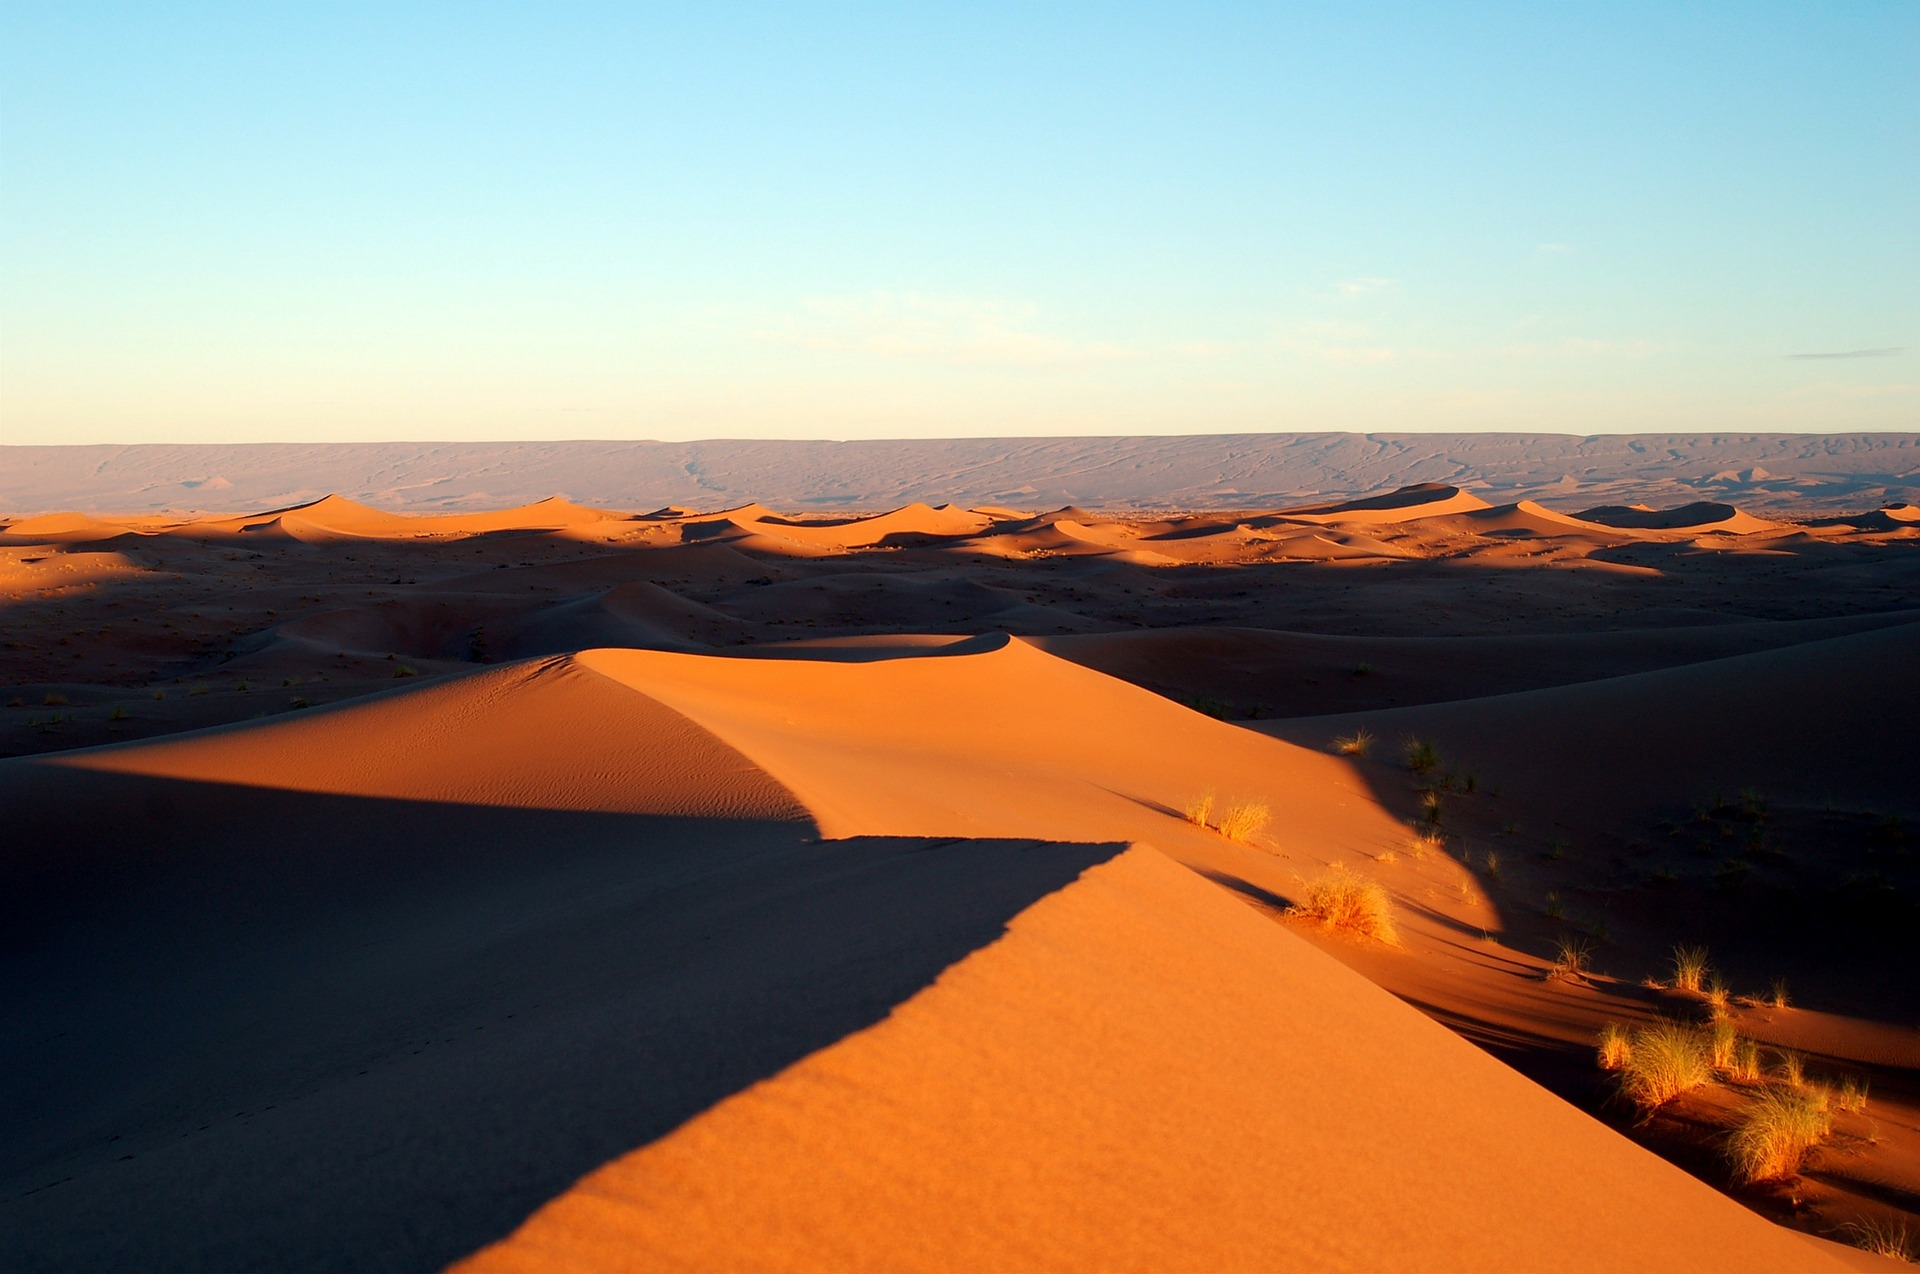 Explore the Deserts in Morocco - Agafay, Merzouga, and Zagora